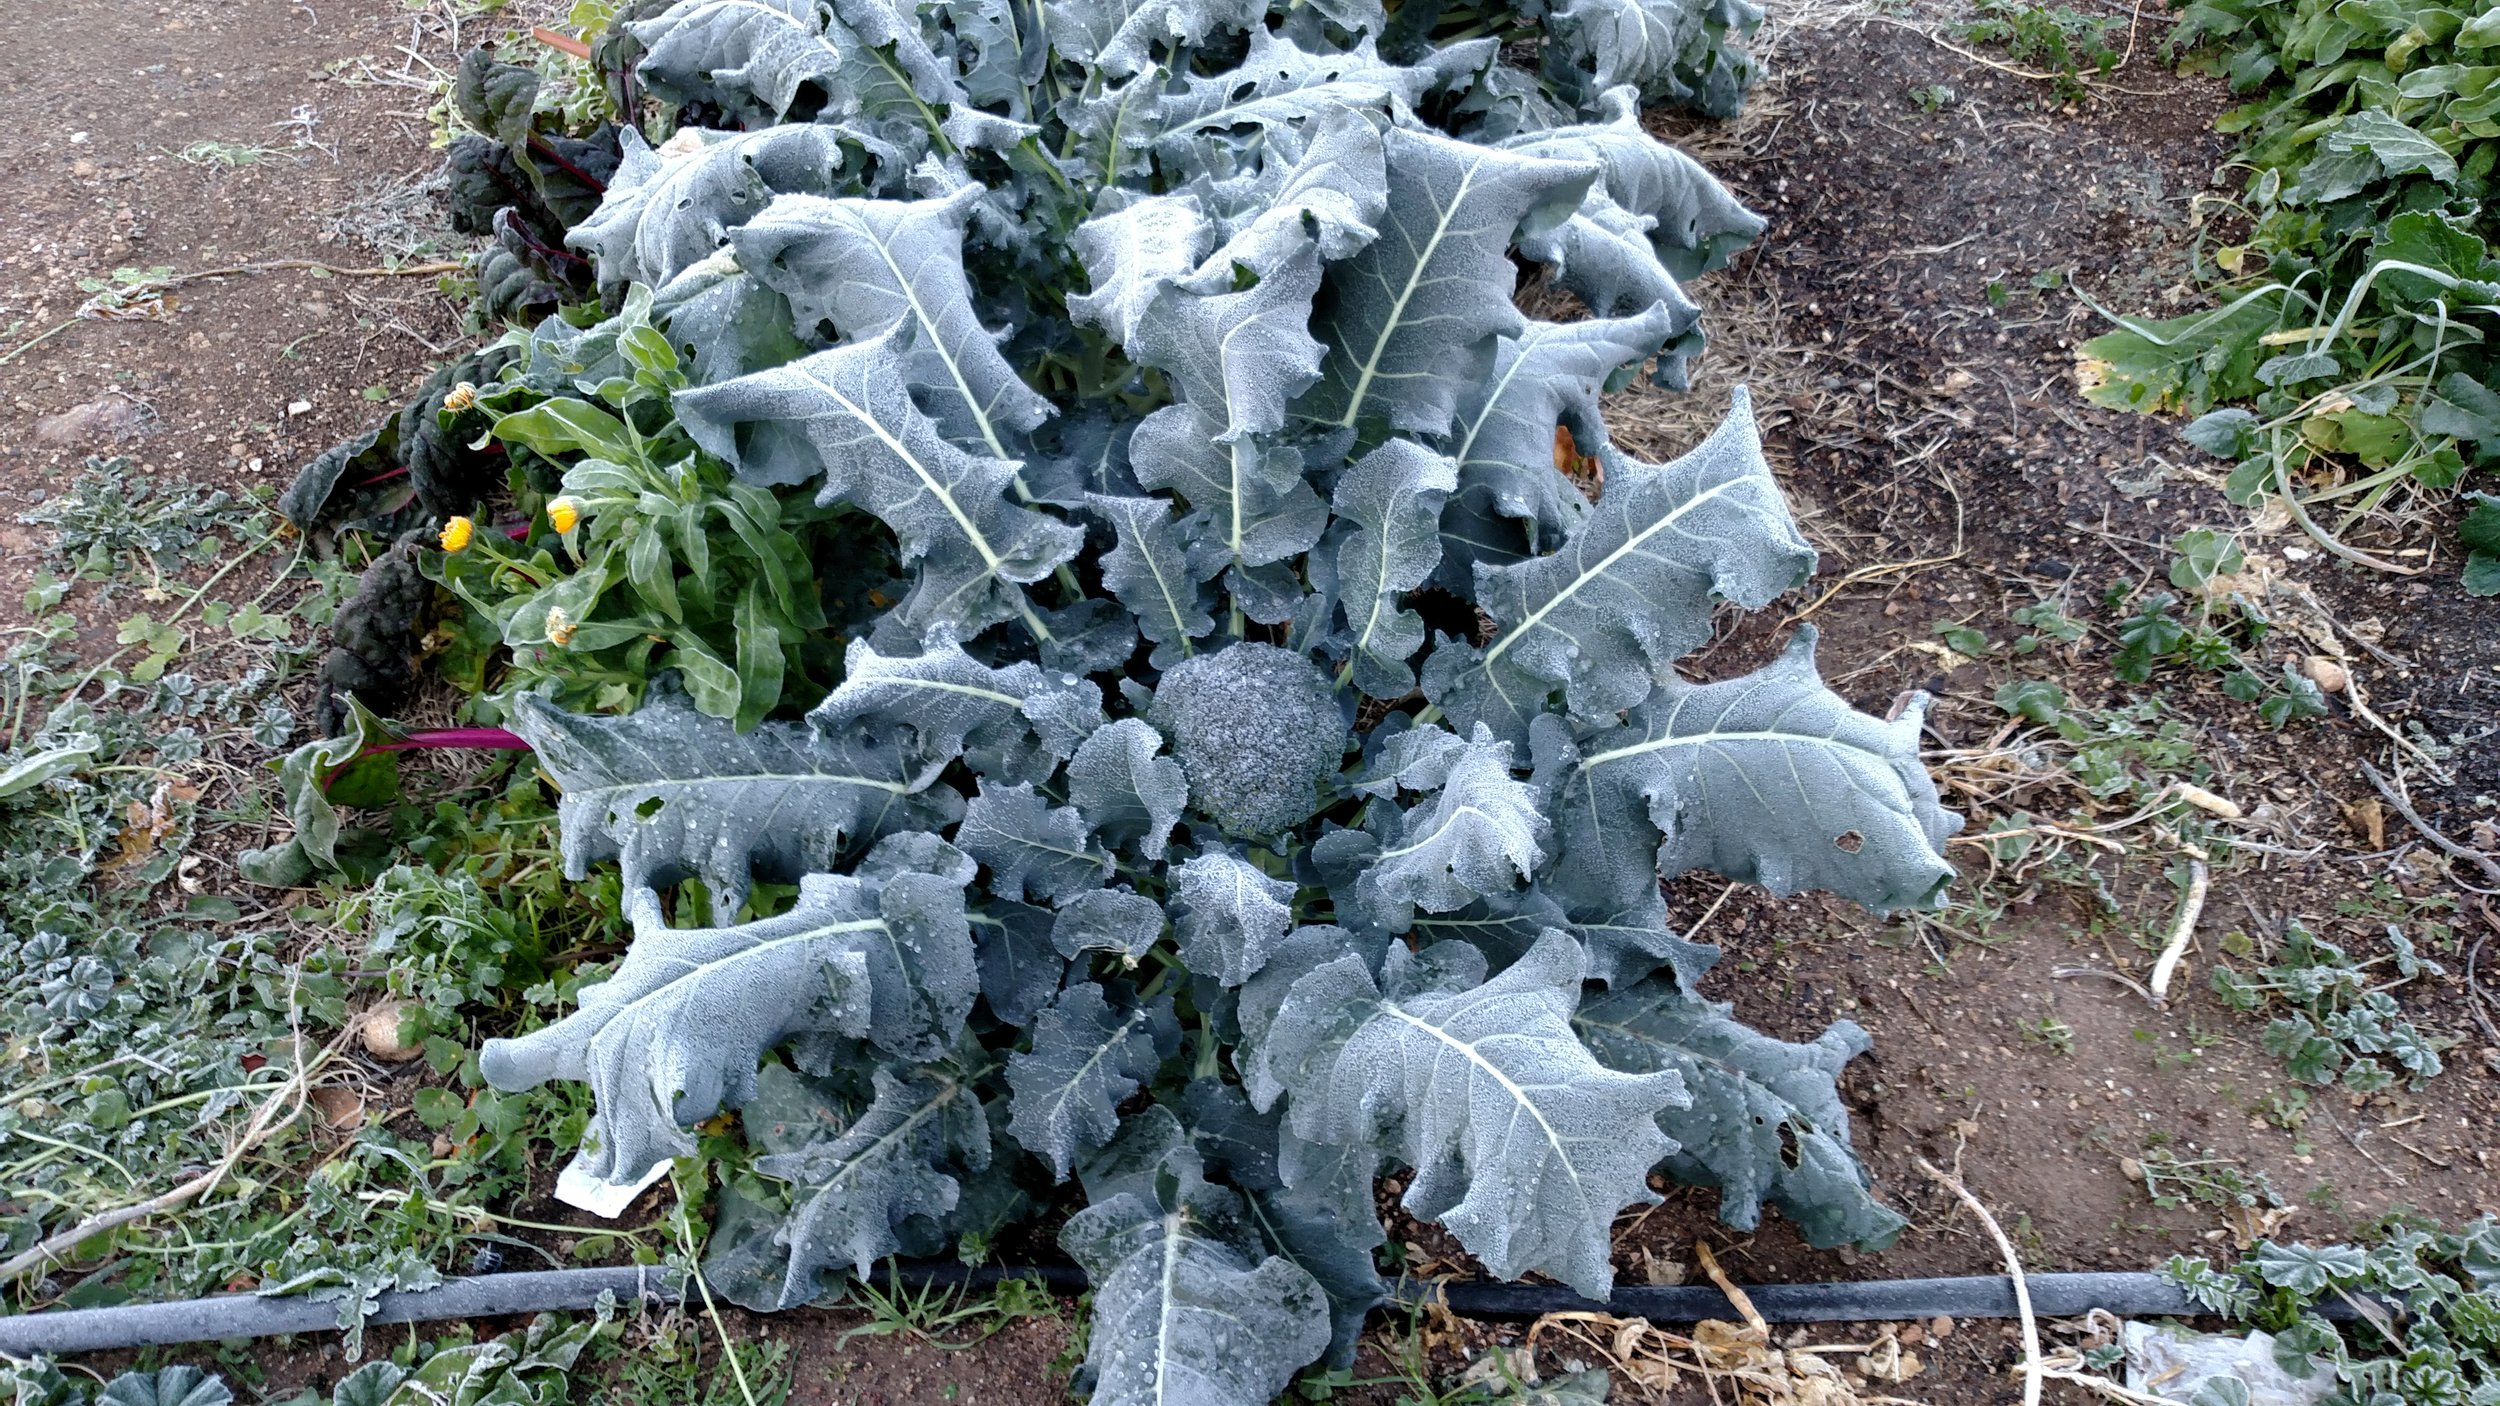 Broccoli, cabbage, and other brassicas are highly resistant to frost damage and don't need covering